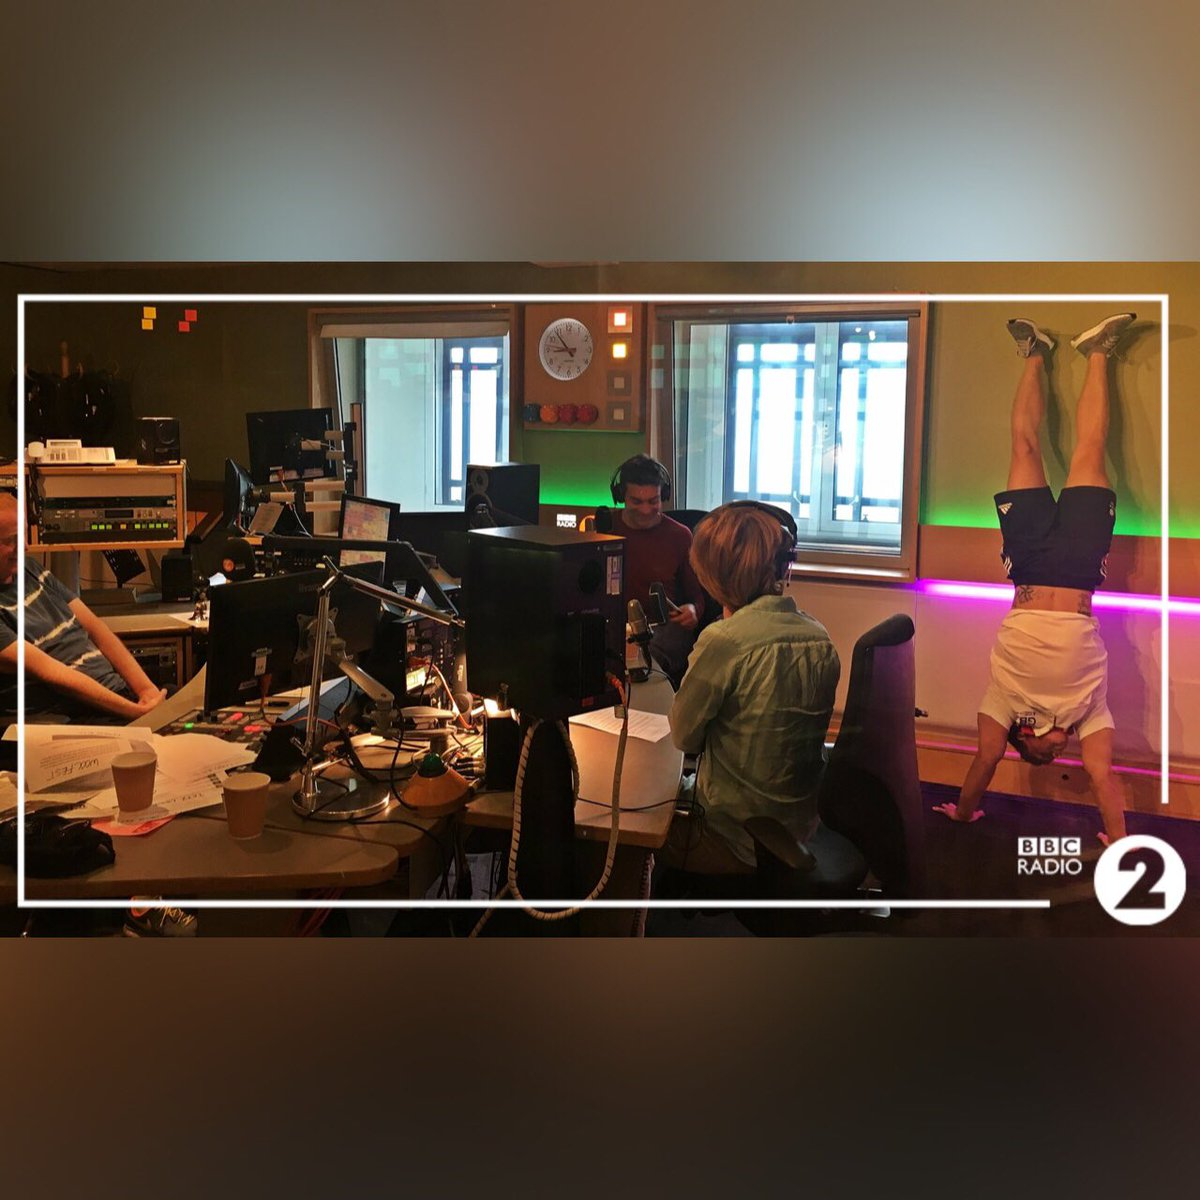 I caught up with @achrisevans & @VassosA on @BBCRadio2 to talk #HandstandDay . Catch my upside down interview here